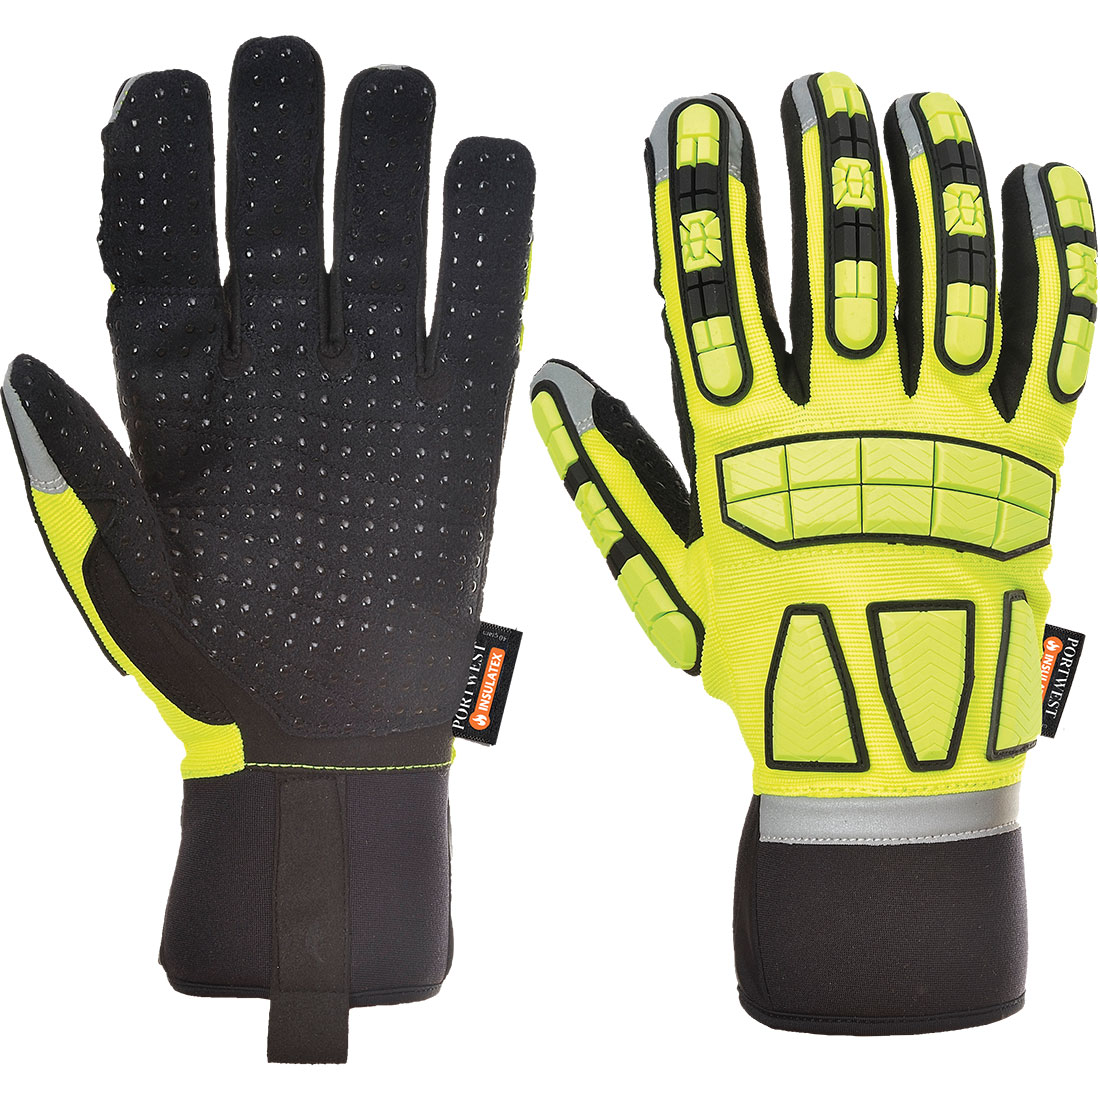 Portwest Safety Impact Glove Unlined - A724